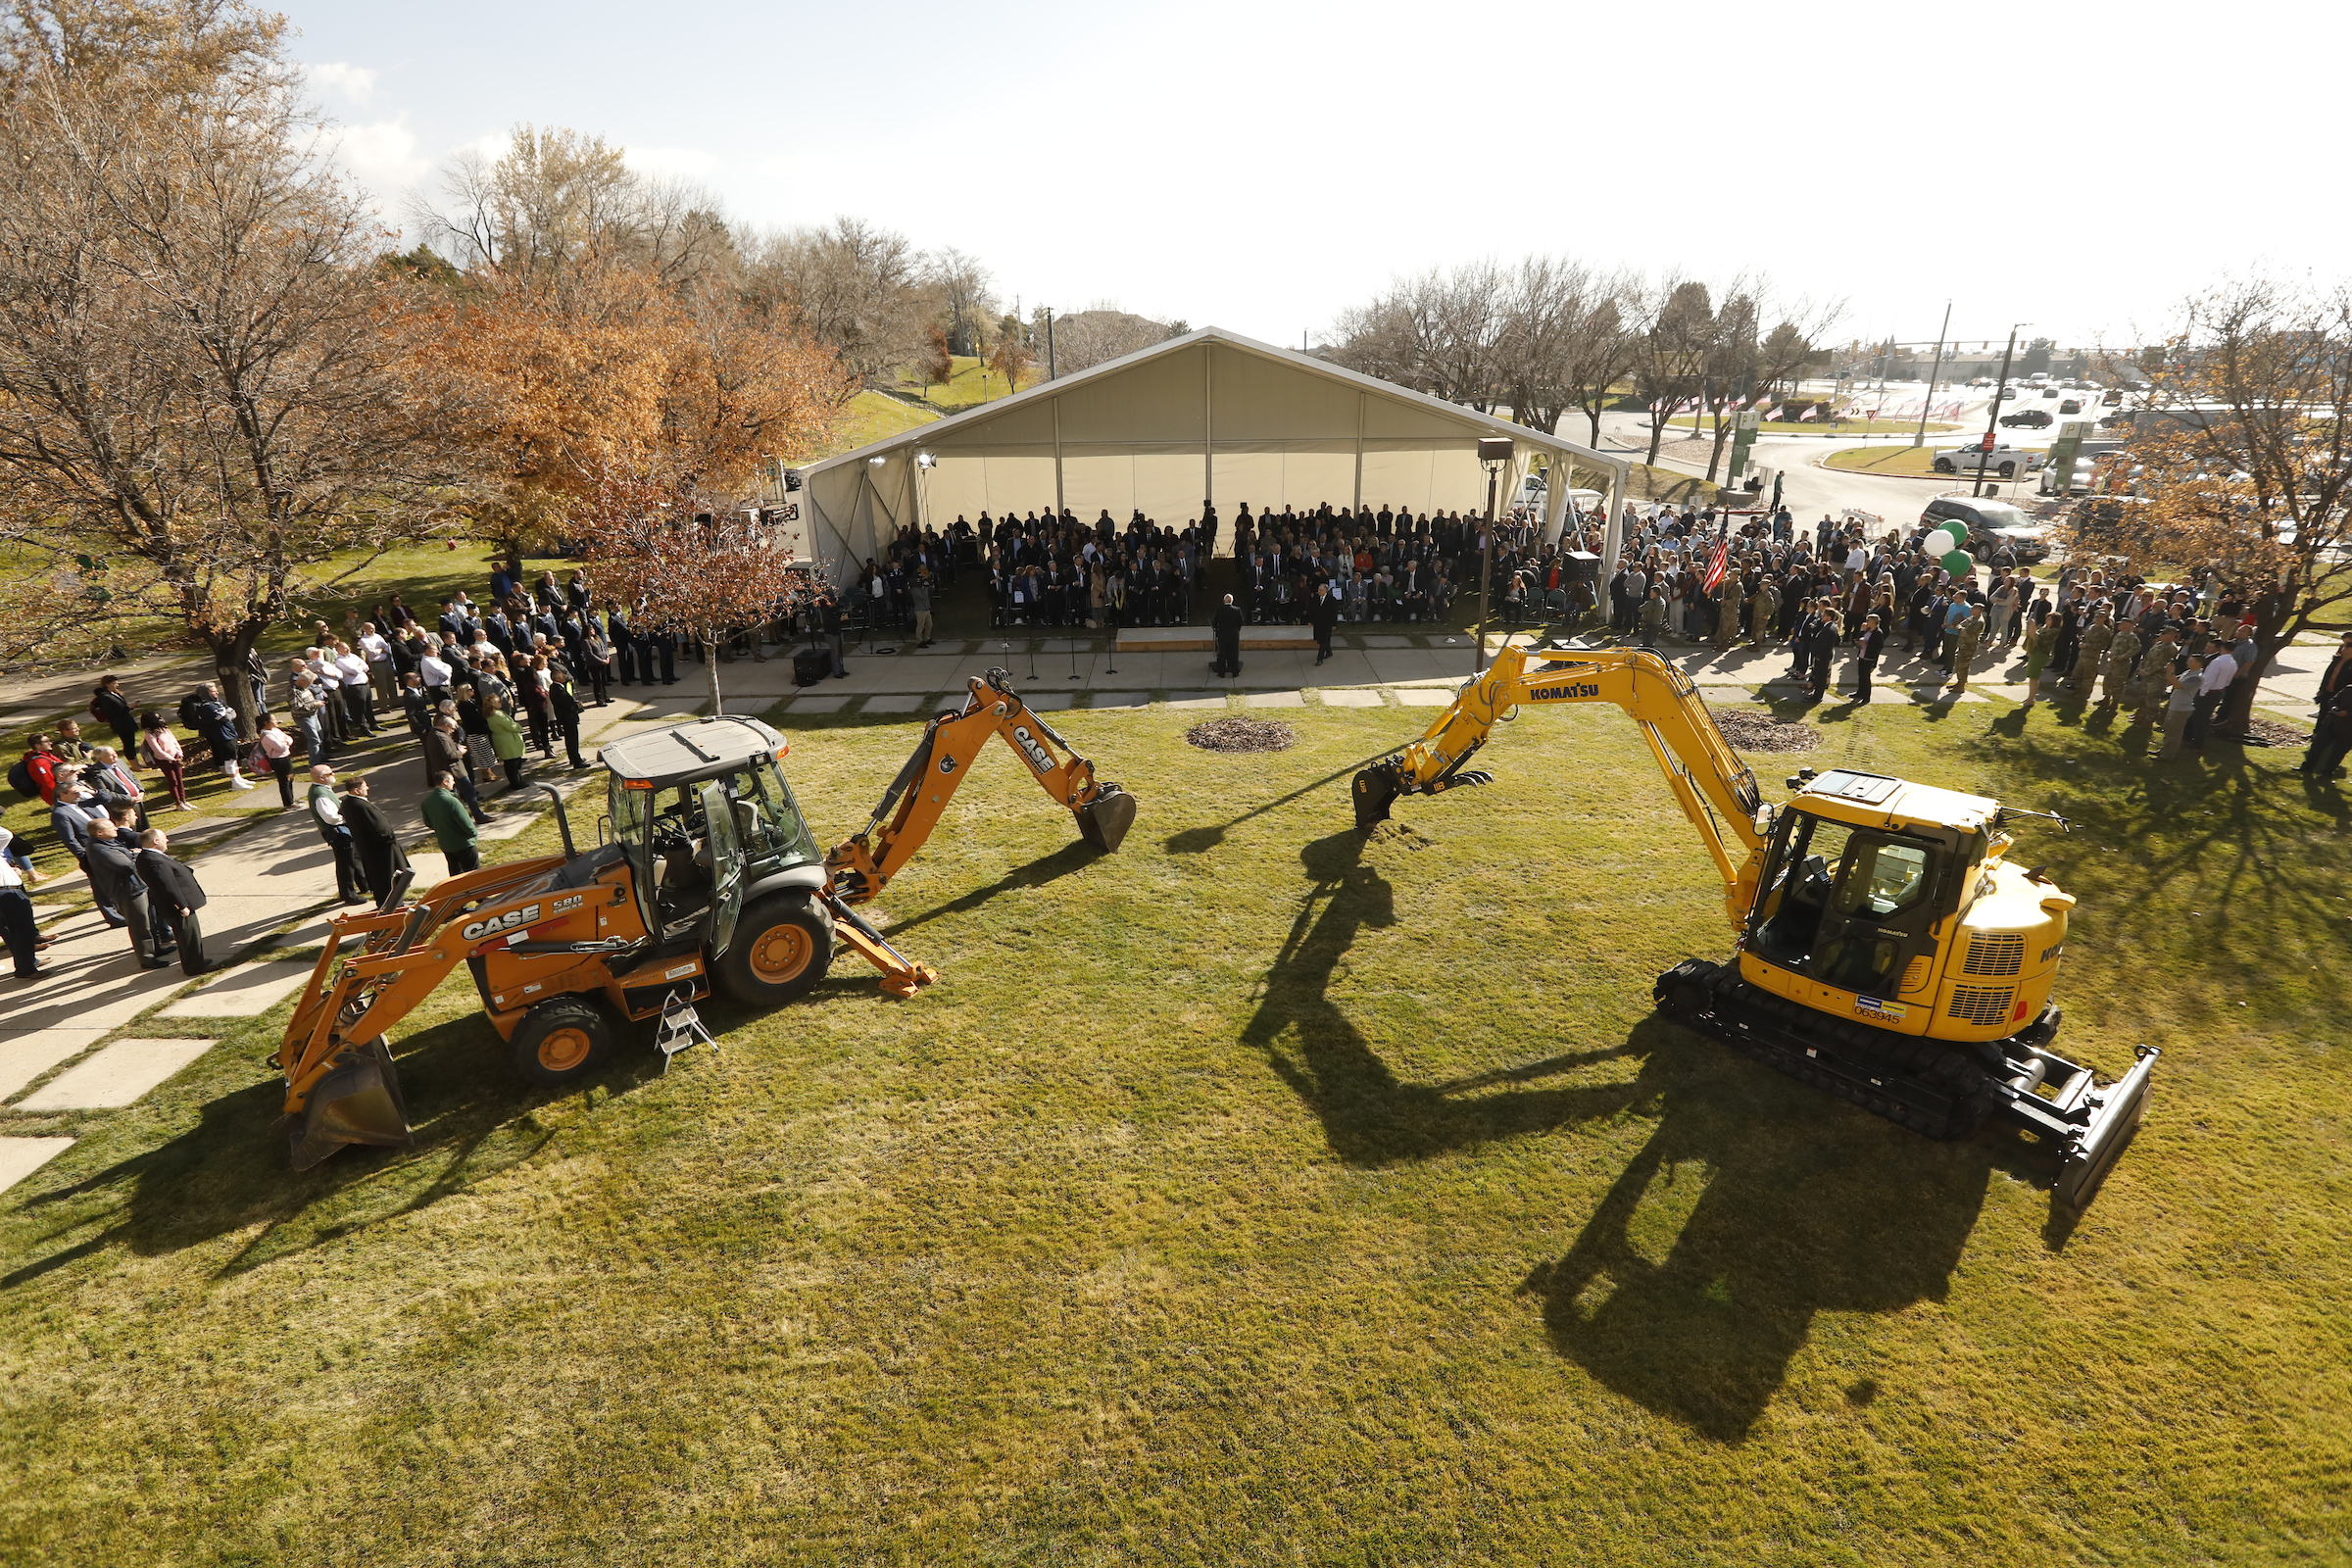 Backhoe and earthmover ready to turn ground forthe new Scott C. Keller Building at Utah Valley University. Ground was broken Monday, Nov. 11, 2019 for the $75 million, 180,000-square-foot building, which will be the new home of the Woodbury School of Business.